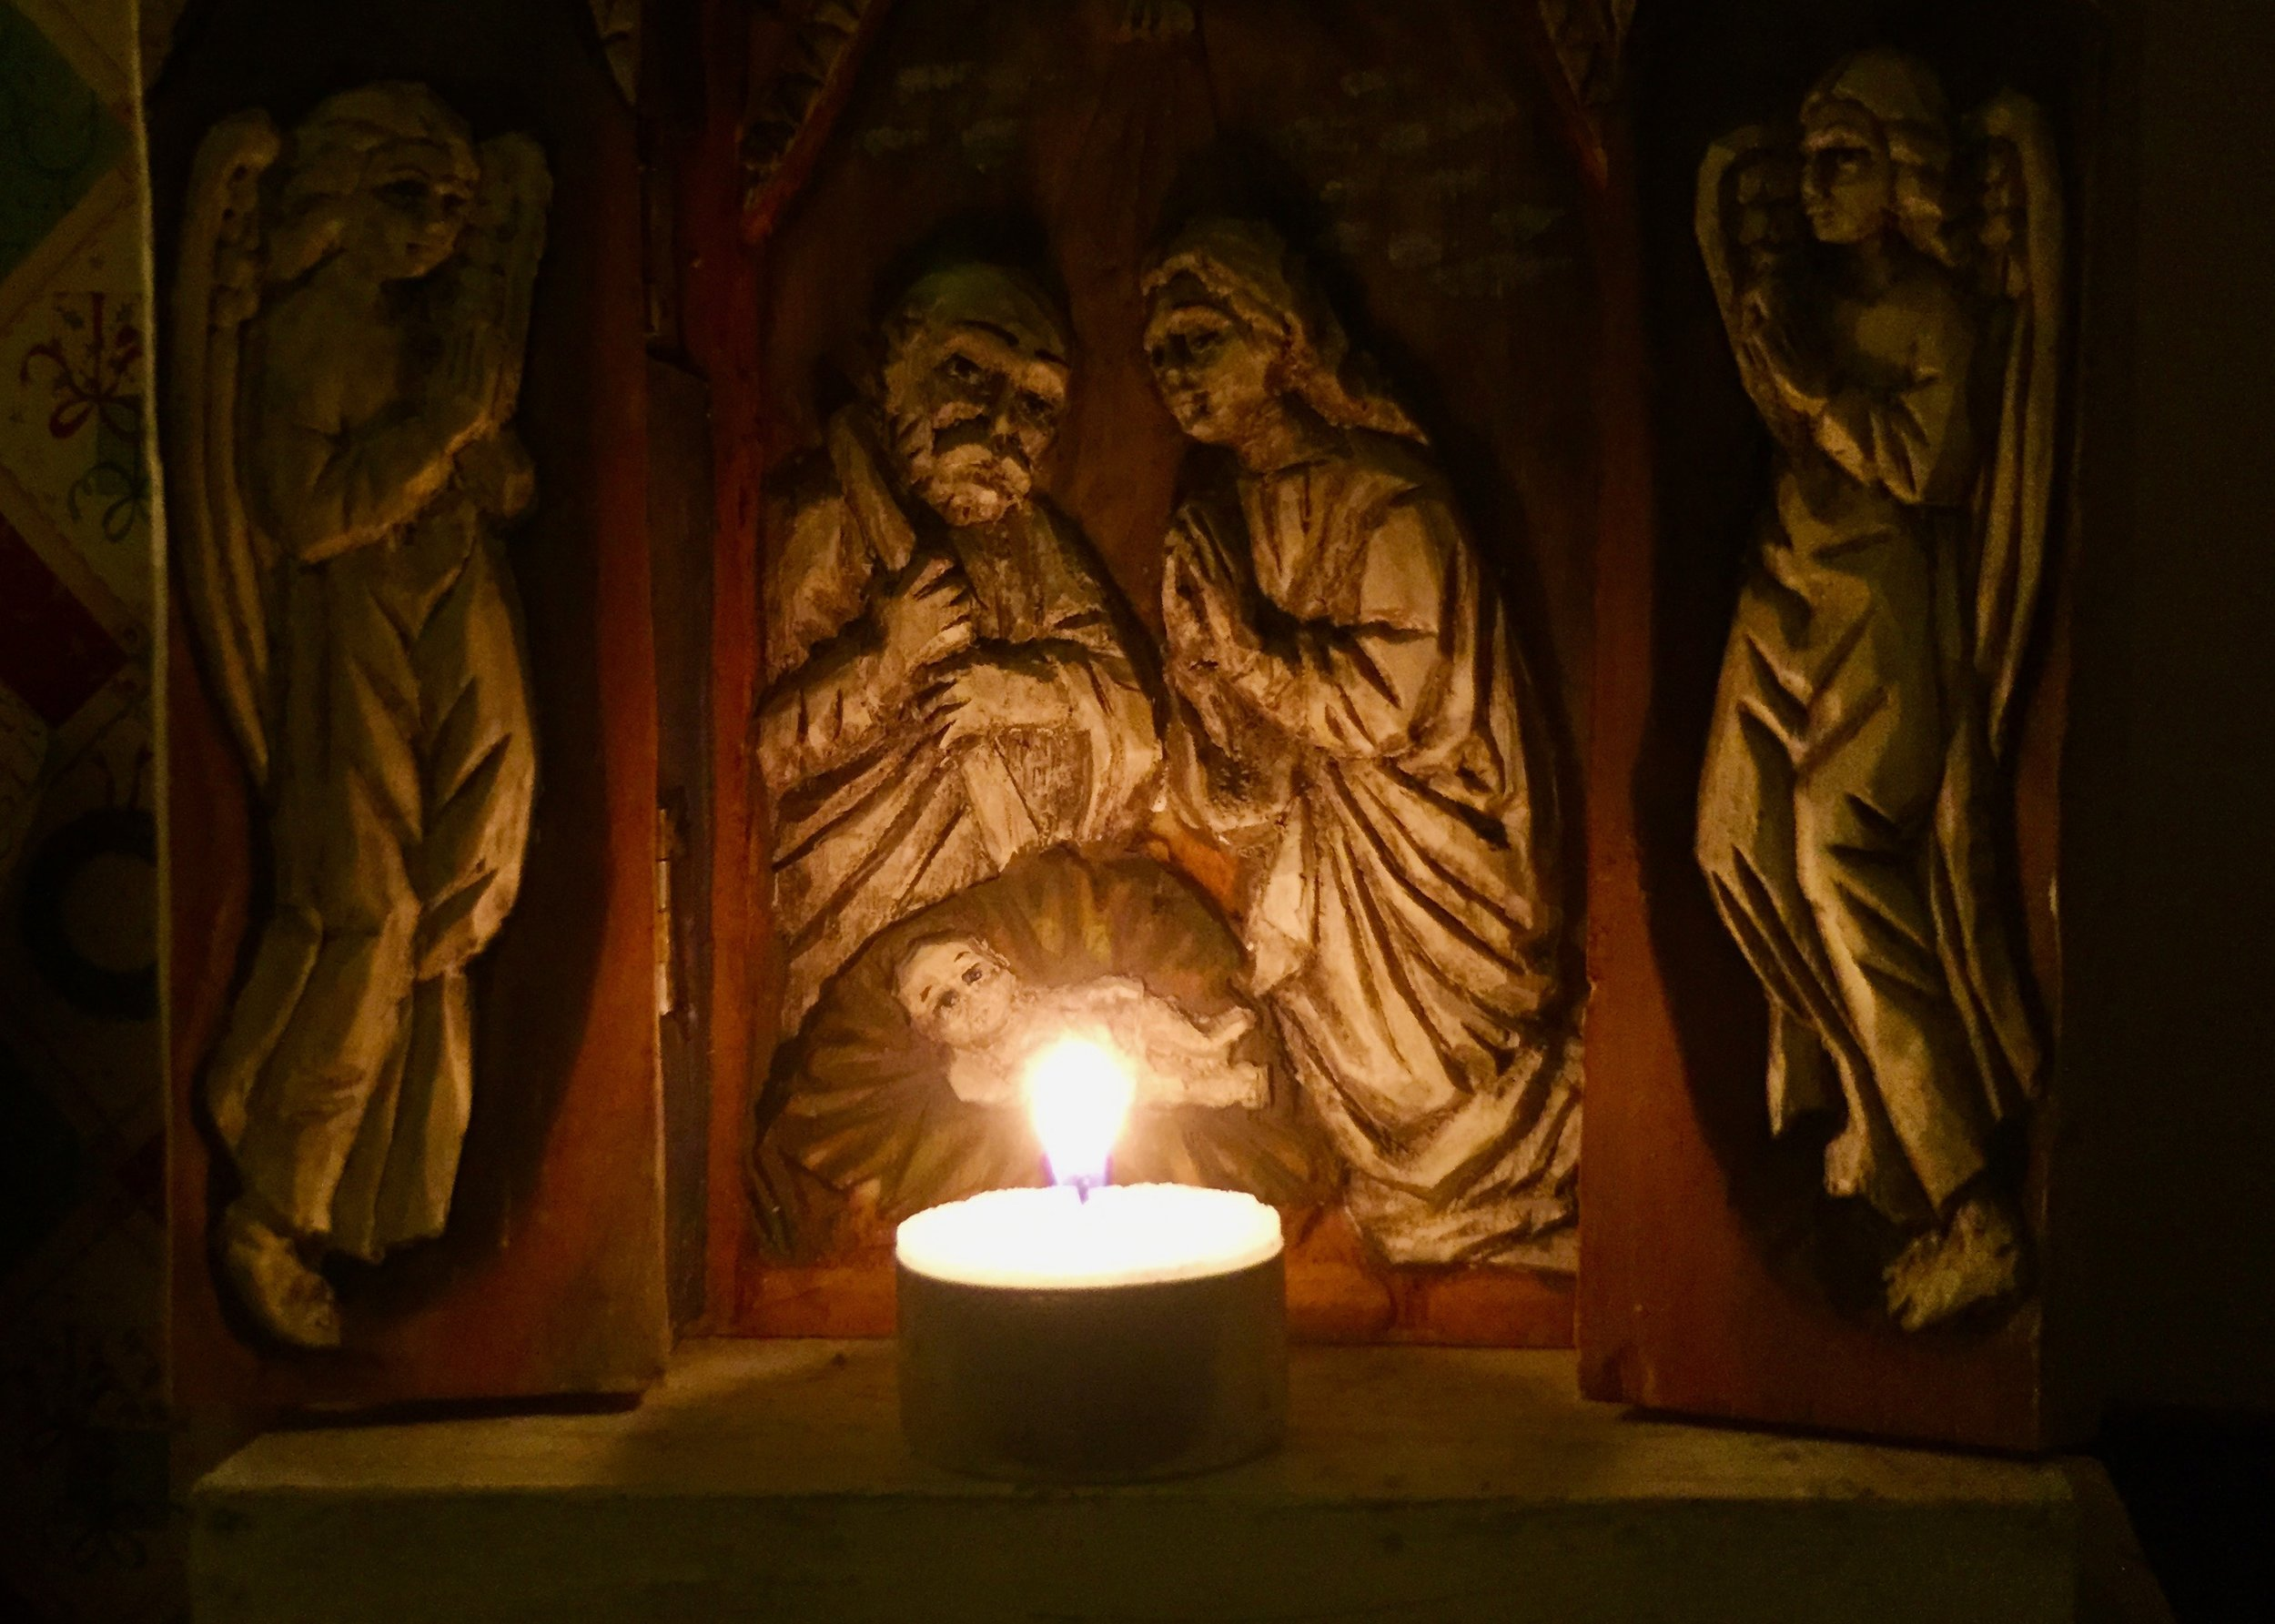 (c) A. Furchert: The manger scene in the robes of our Christmas angel